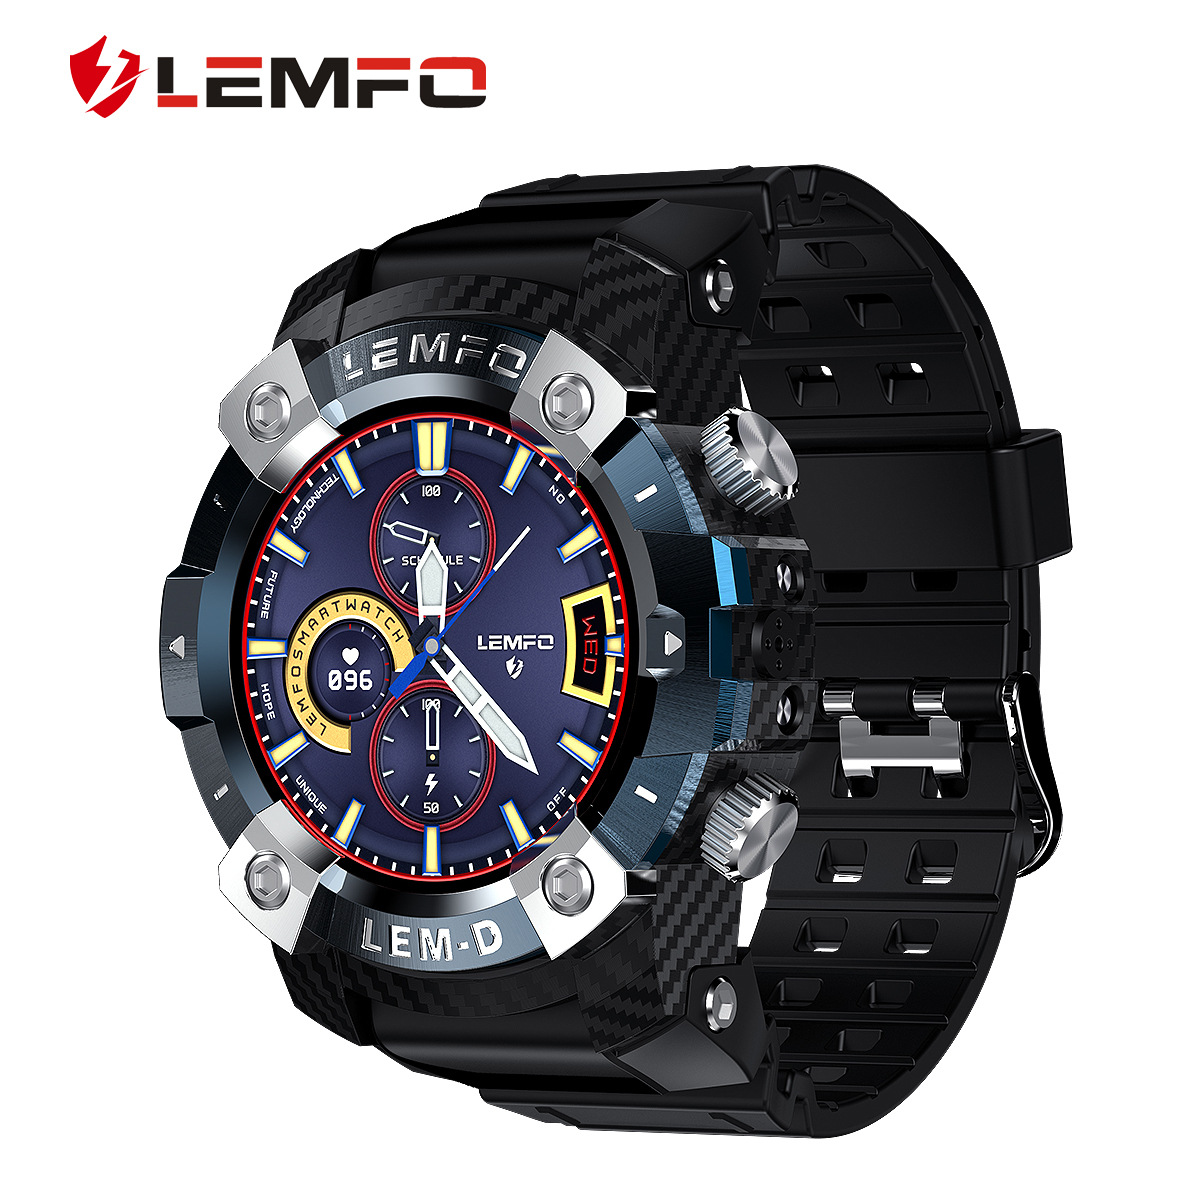 LEMFO 1.3 inch stainless steel ring 360*360HD dual bluetooth TWS earphone LEMD smart watch